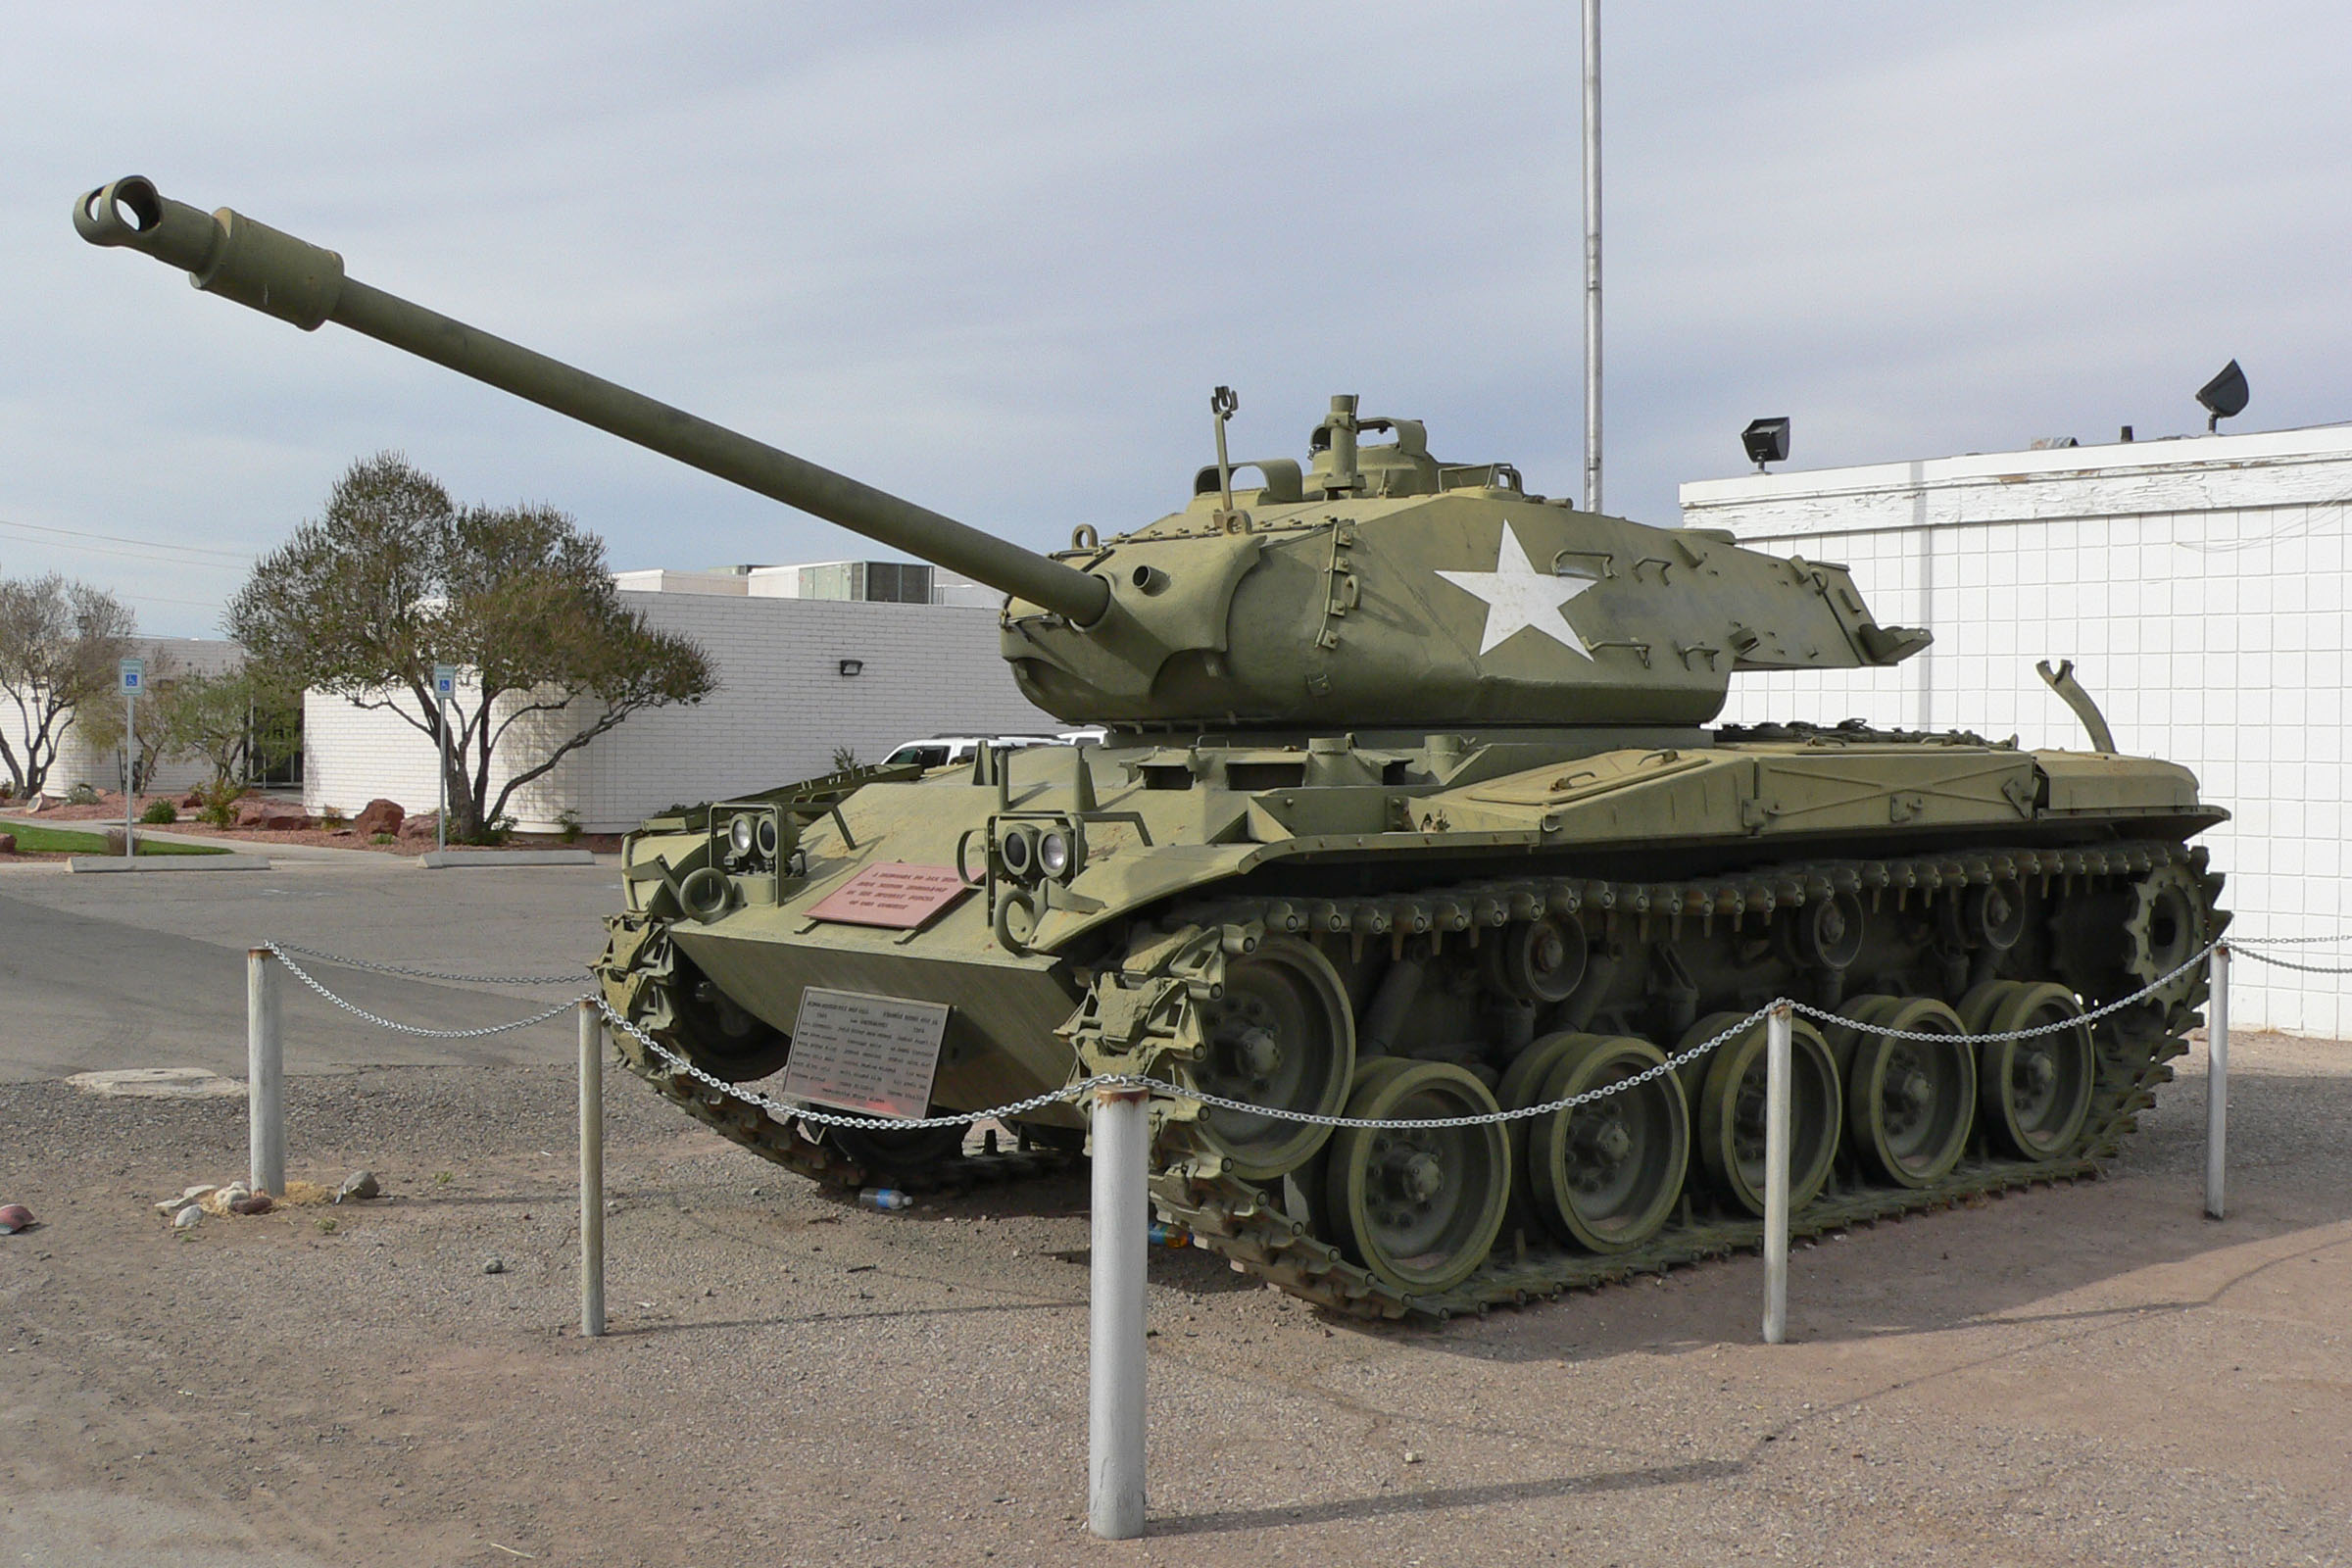 M41_Walker_Bulldog_at_Overton_2.jpg